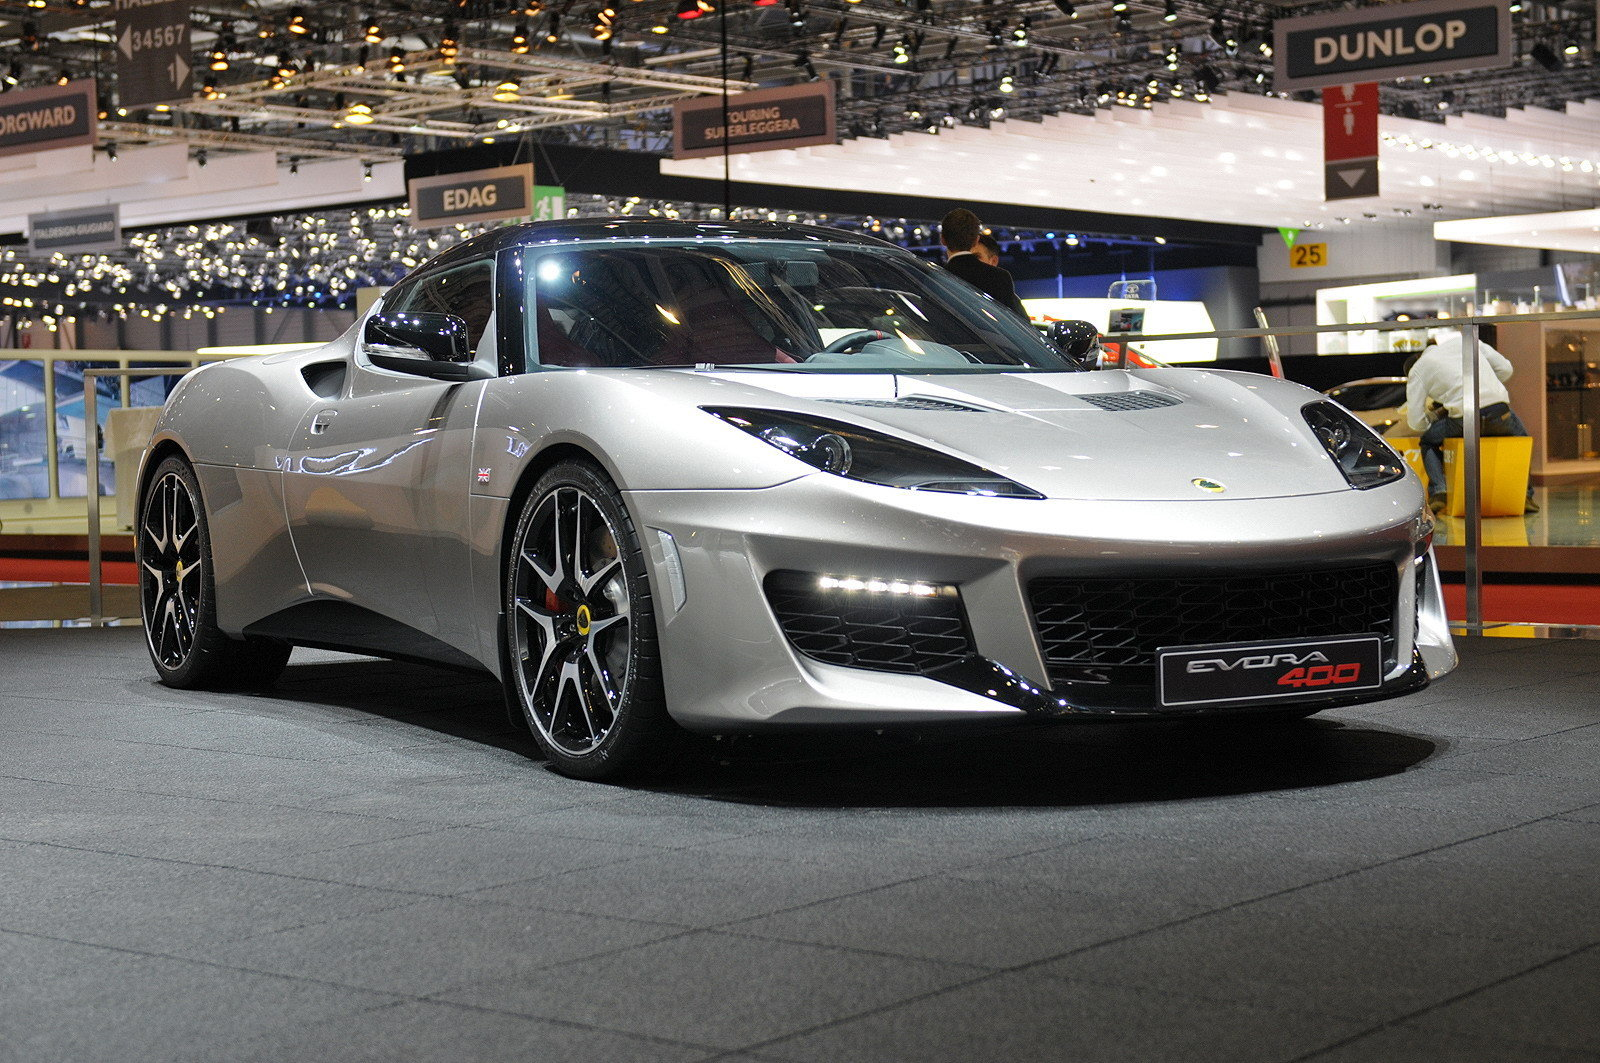 2016 lotus evora 400 picture 622530 car review top speed. Black Bedroom Furniture Sets. Home Design Ideas